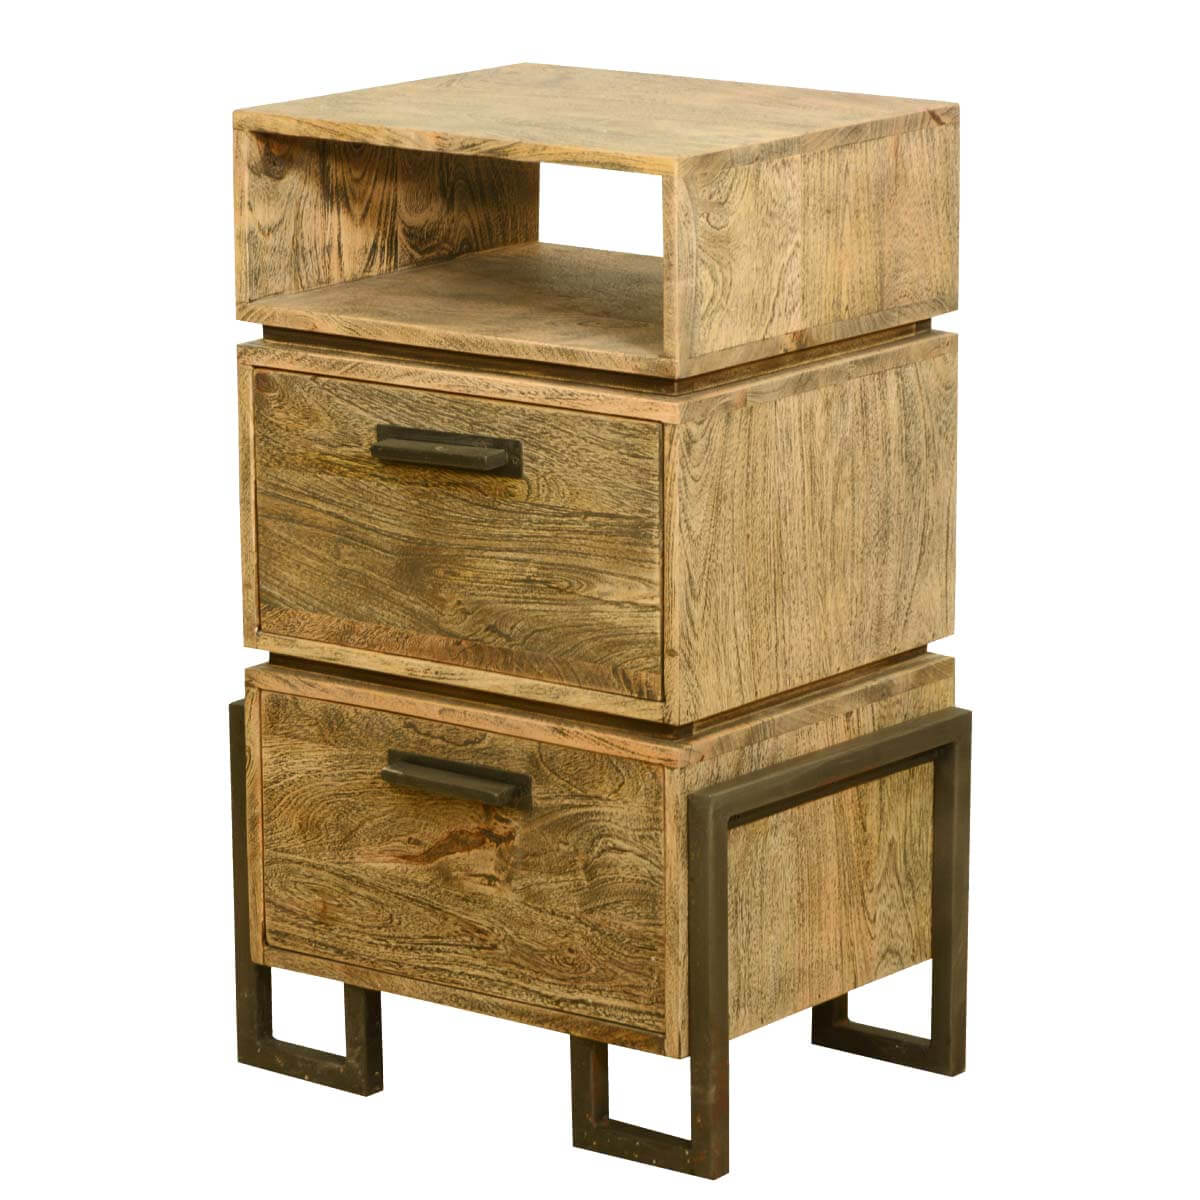 modern rustic industrial style solid wood iron bedside